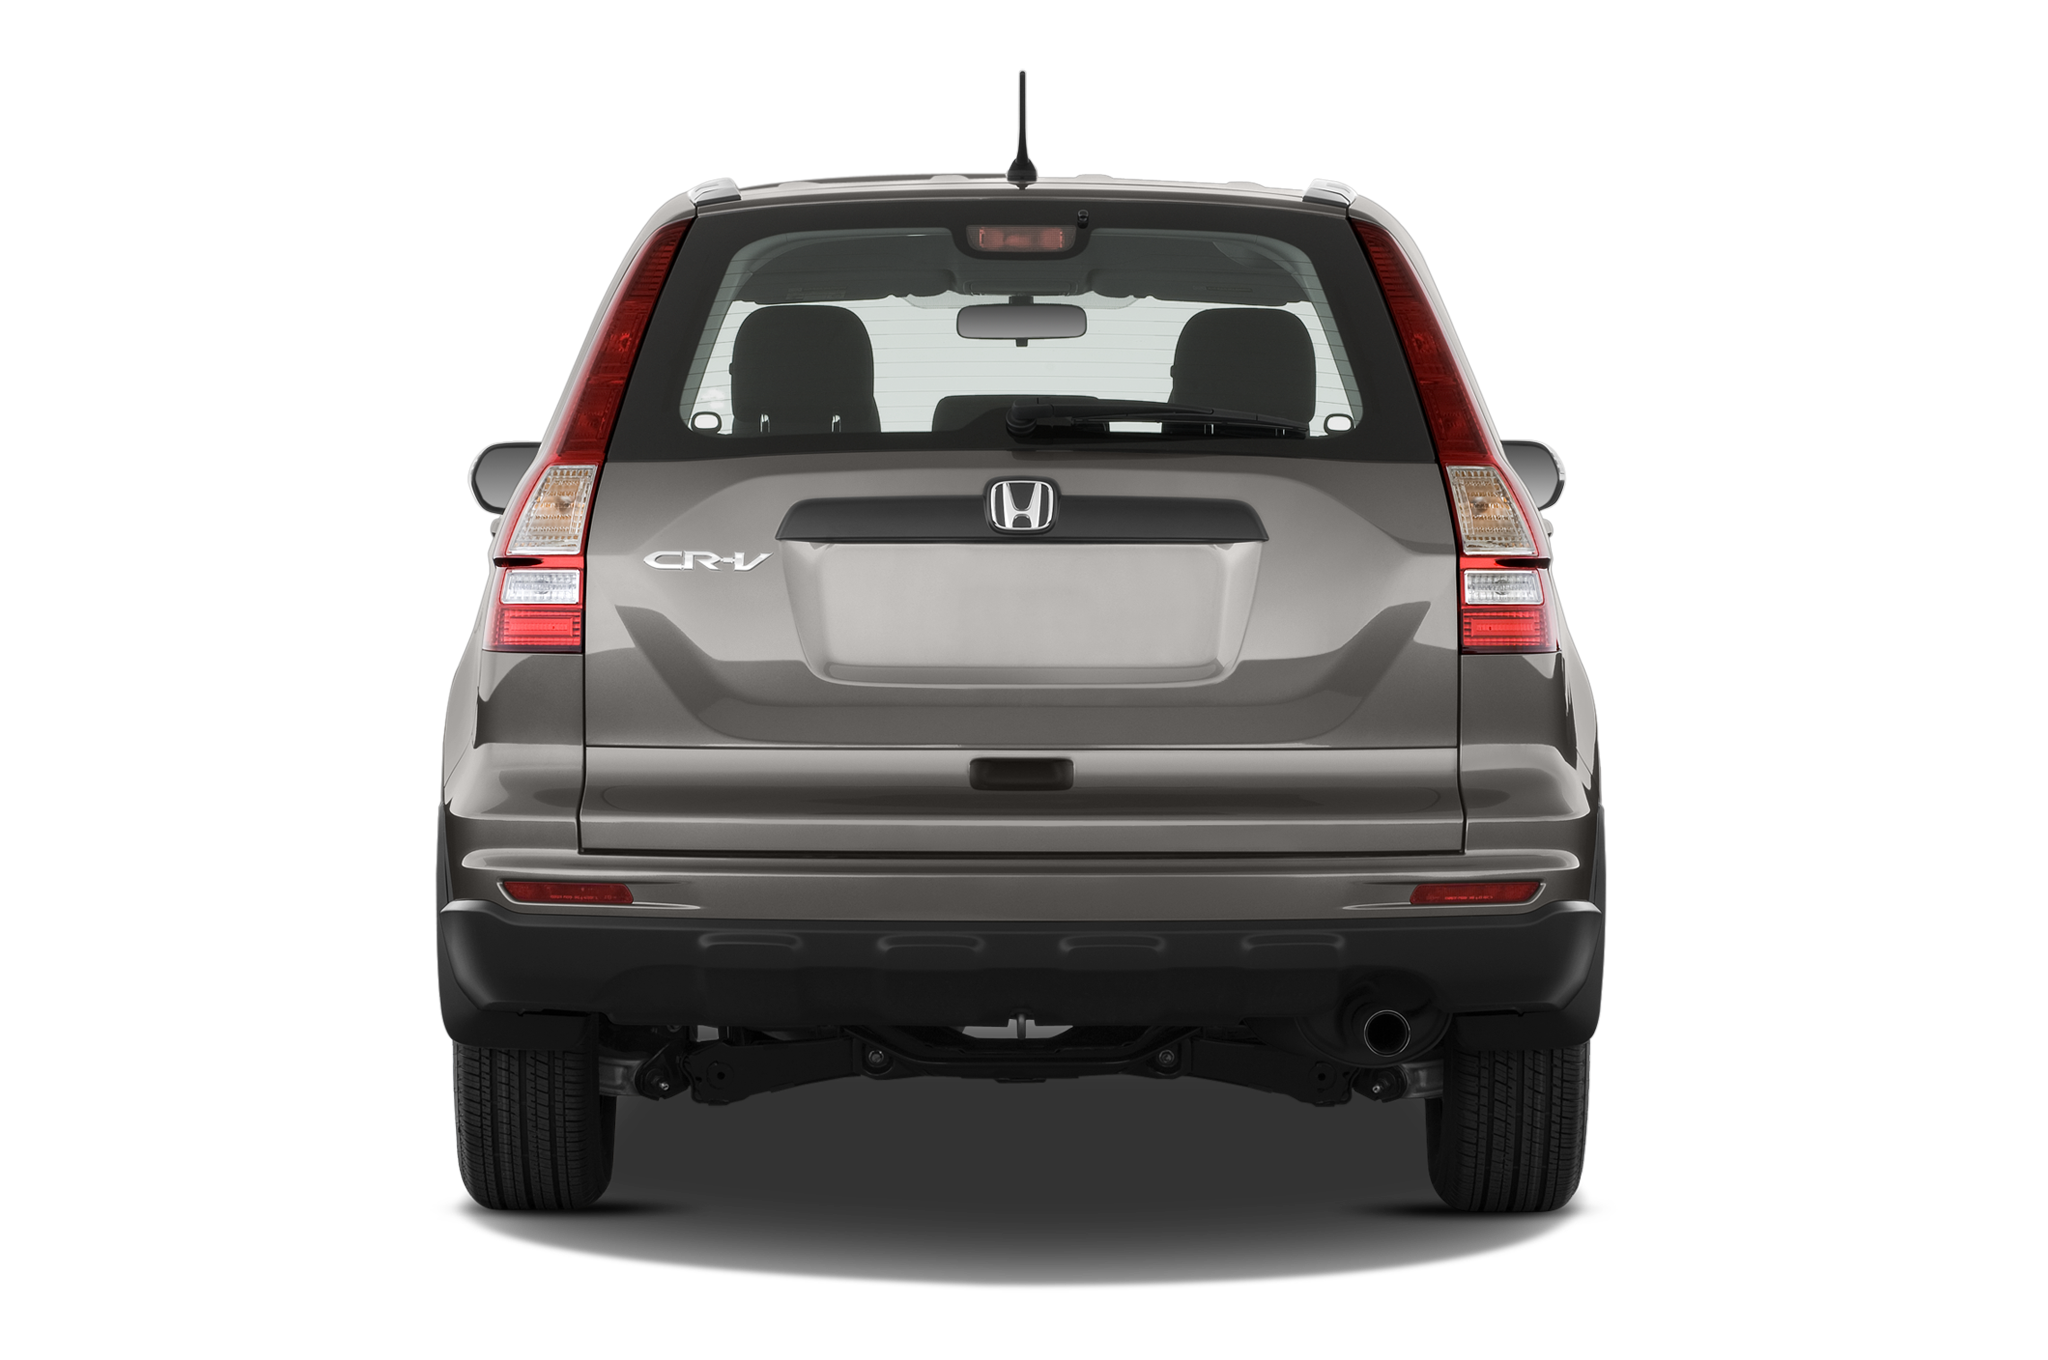 2015 crv exl autos post for Difference between honda cr v lx and ex